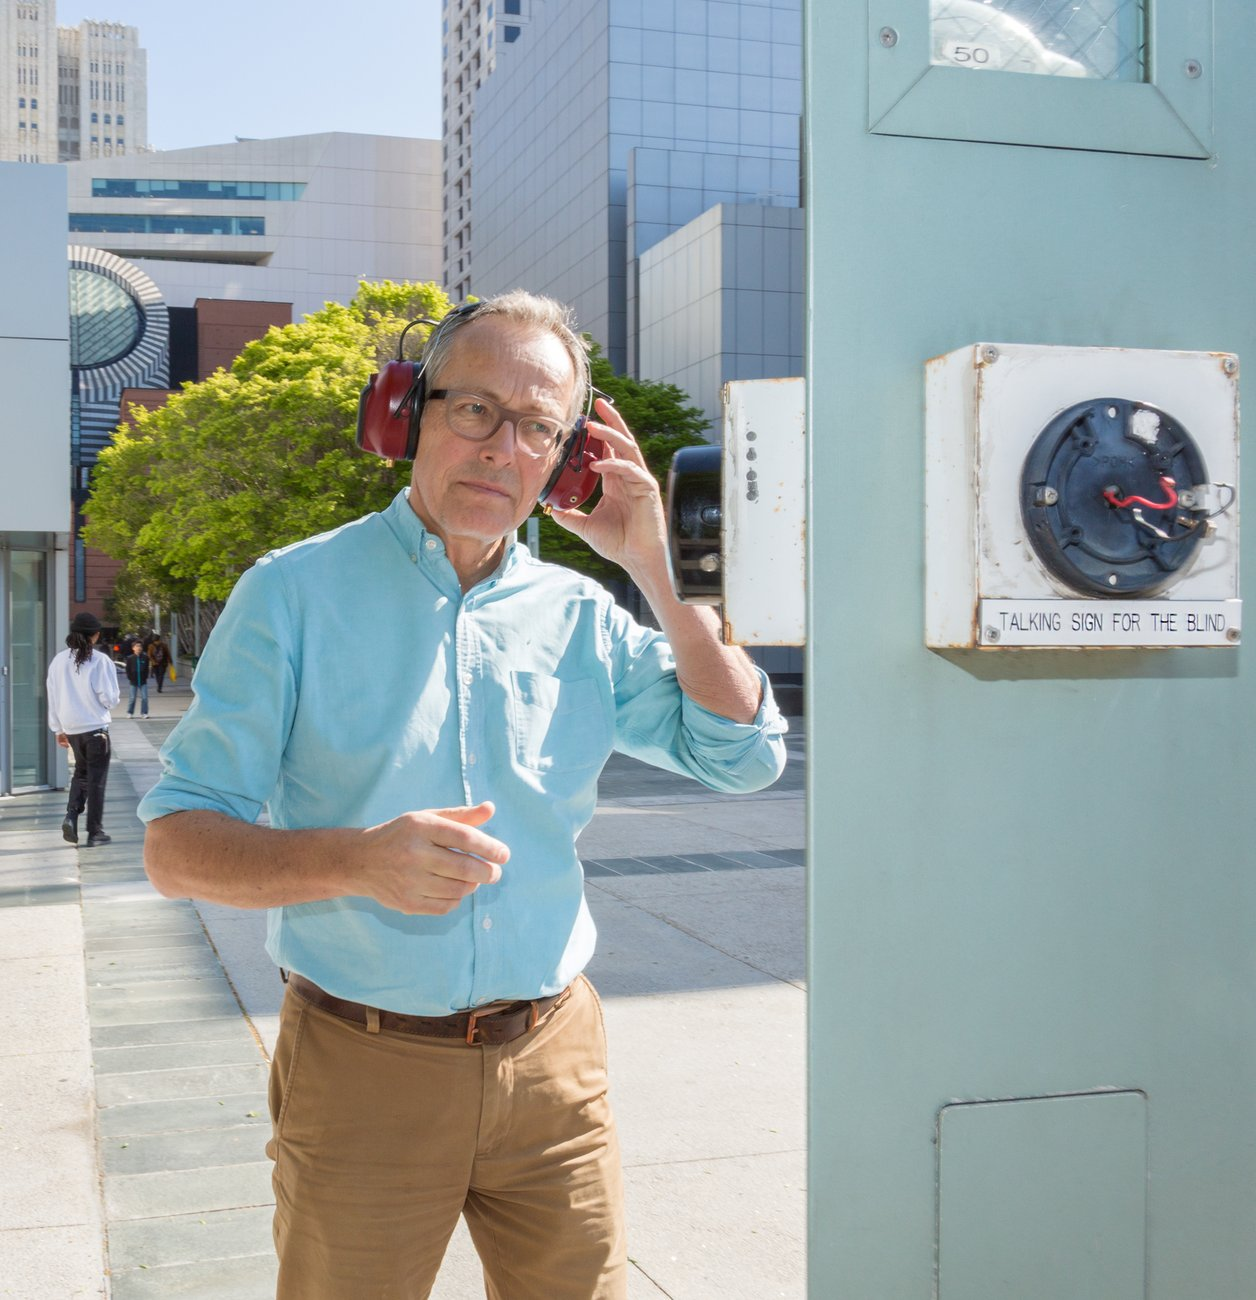 A Caucasian man wearing red headphones and glasses walks toward an electrical meter on the street, Kubisch Soundtracks